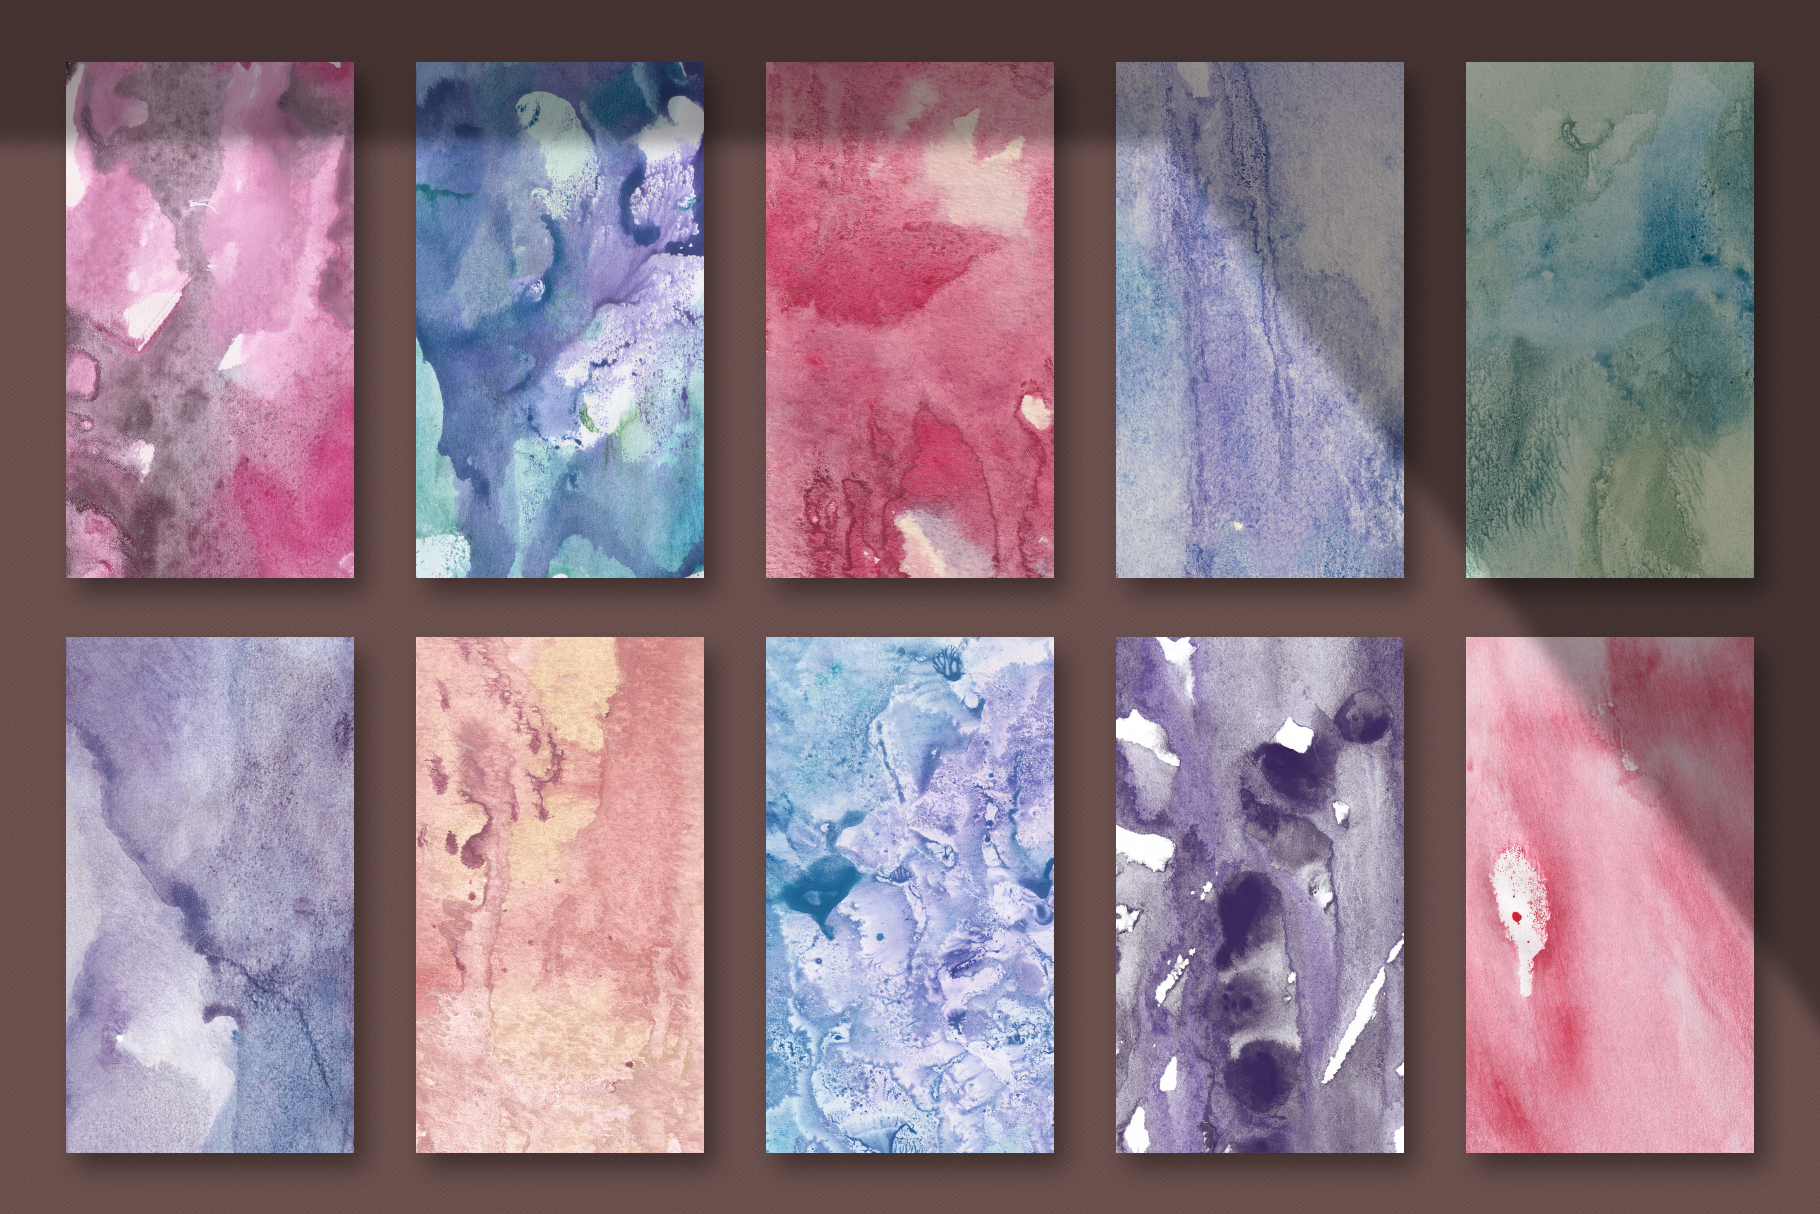 Seamless Watercolor Textures - 10 Watercolour Backgrounds example image 3